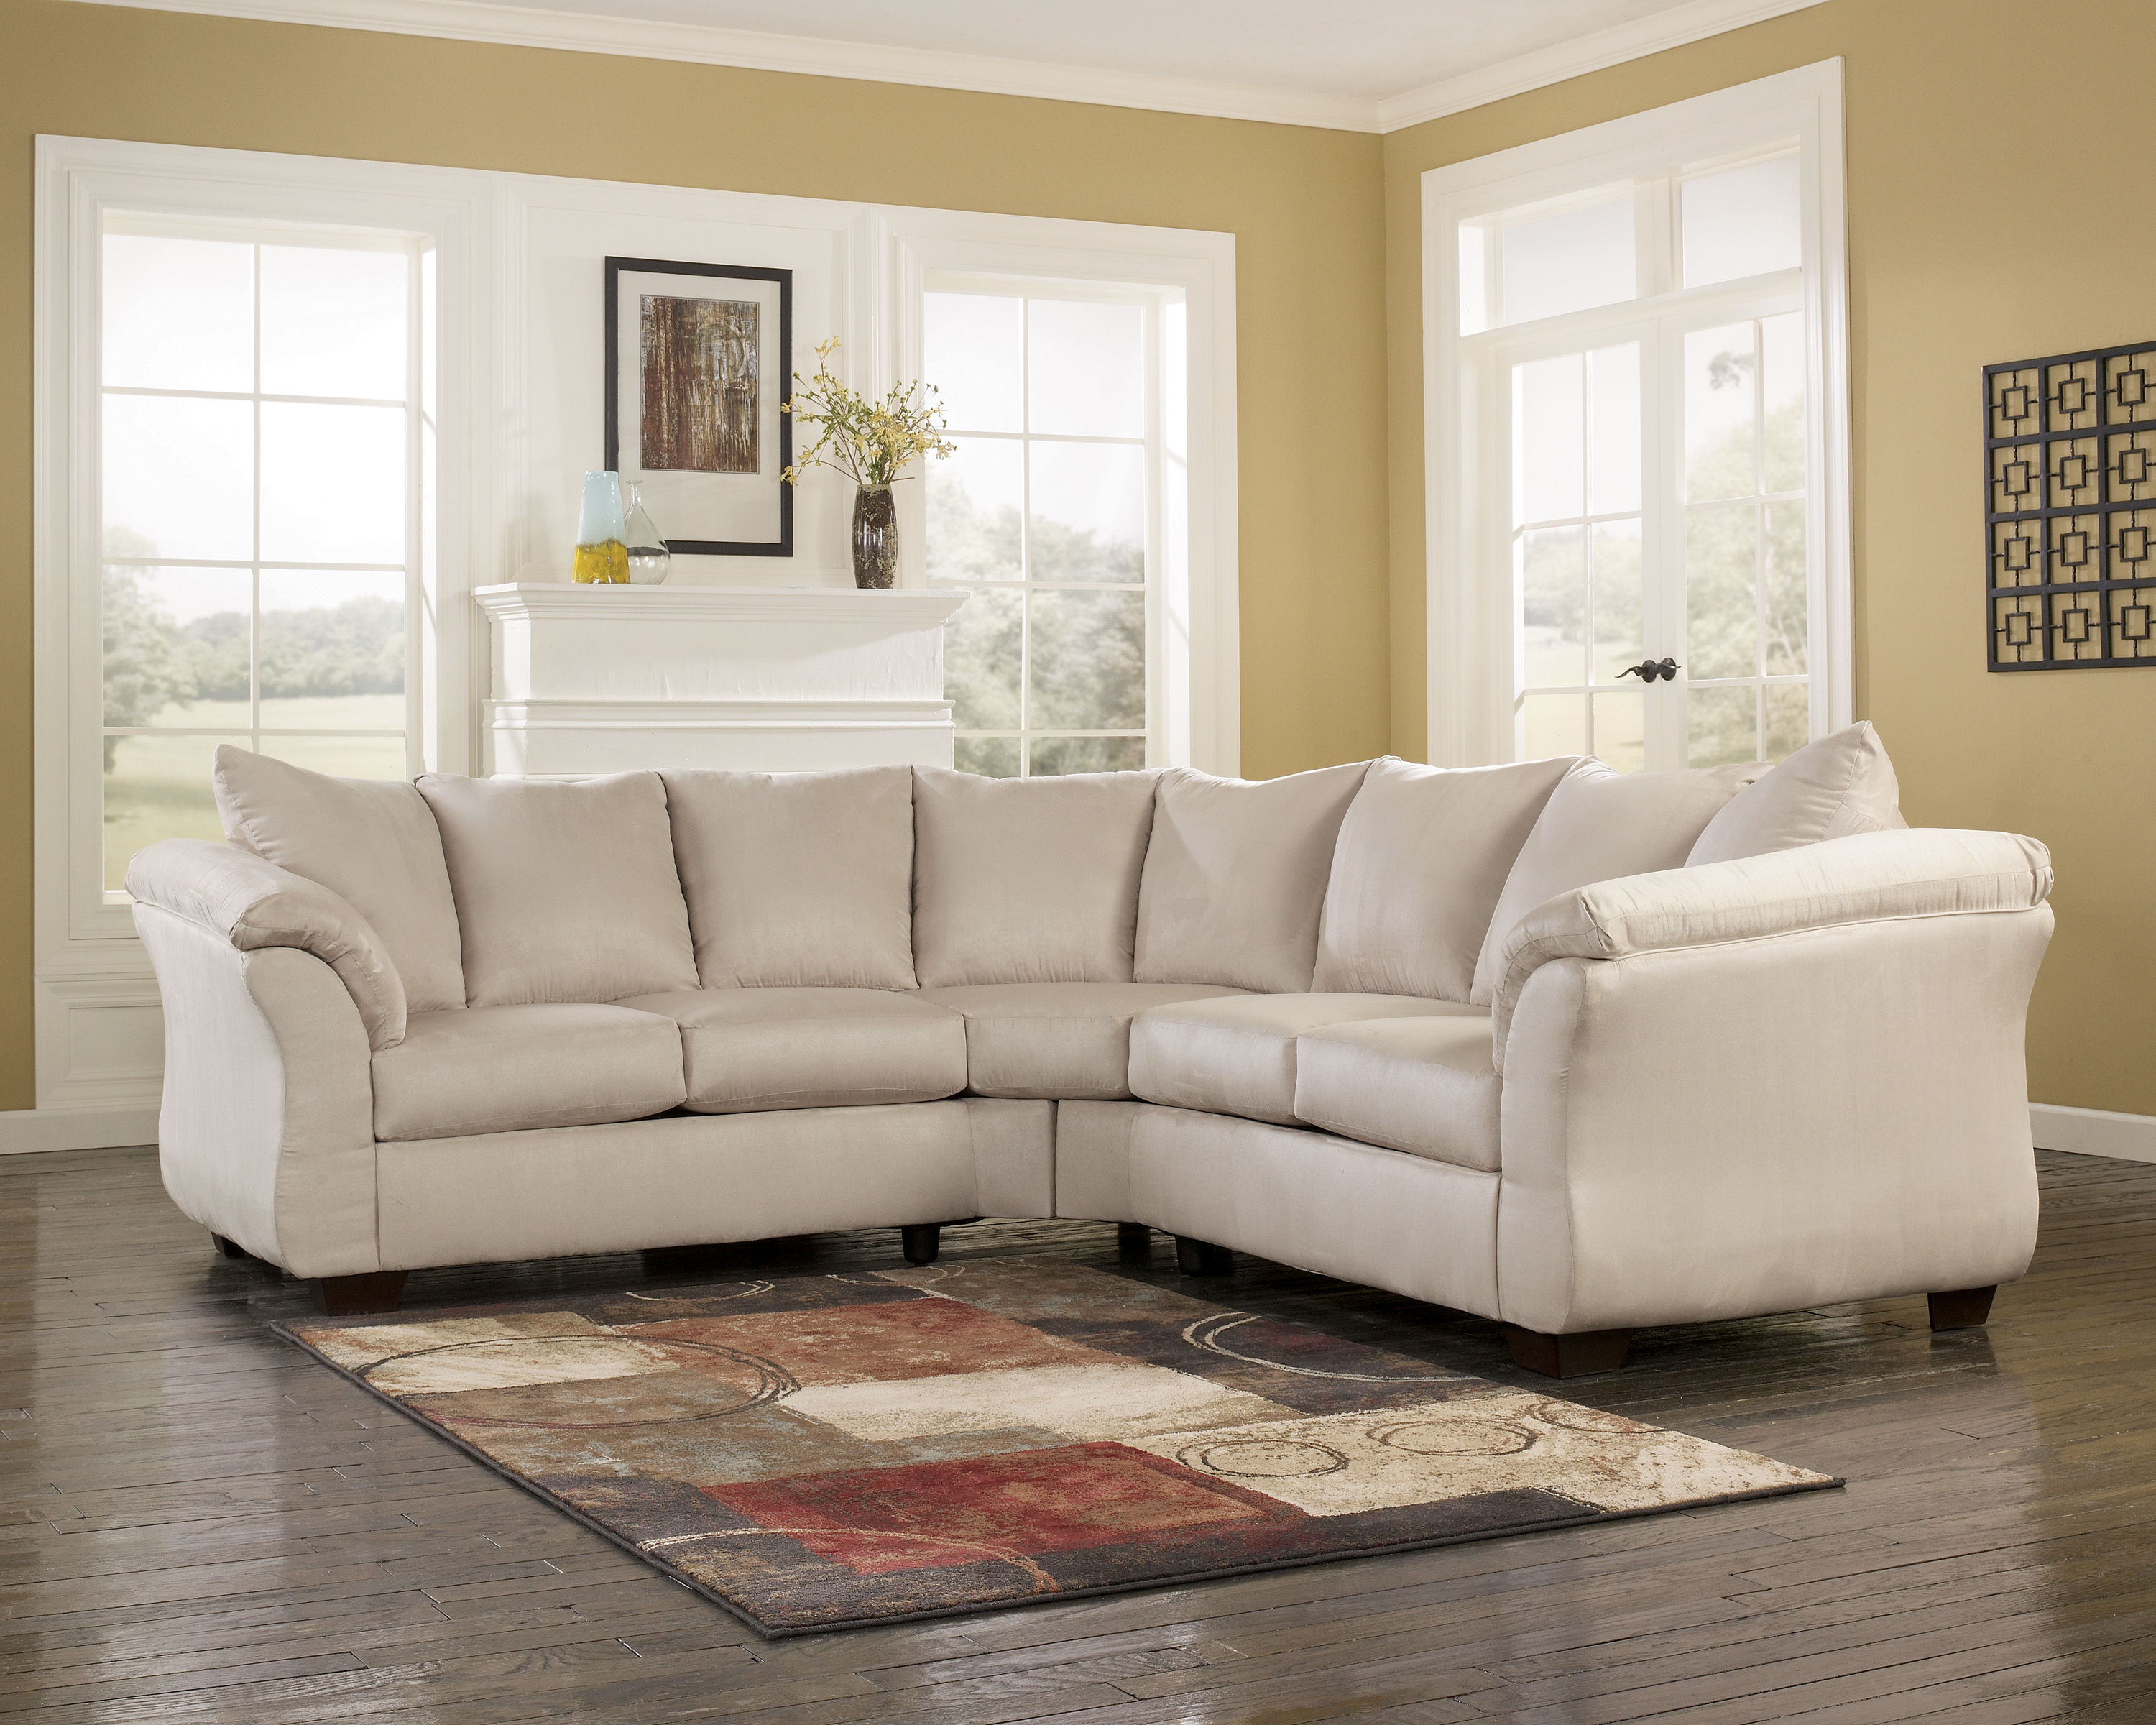 Ashley Furniture Darcy Stone Sectional The Classy Home